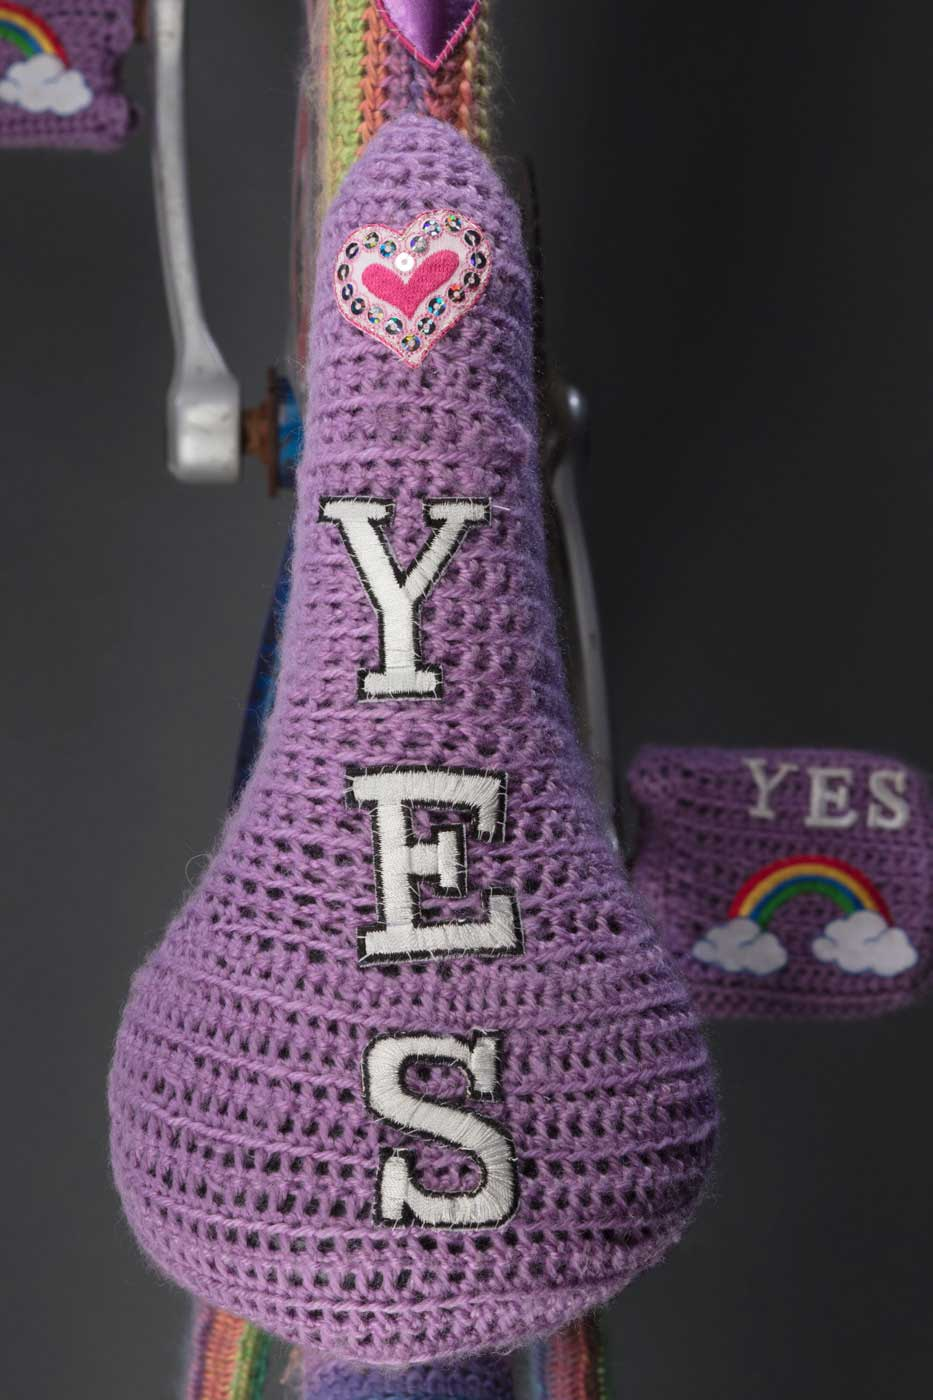 Bike seat covered in mauve wool with the word 'YES' woven vertically beneath a red heart - click to view larger image